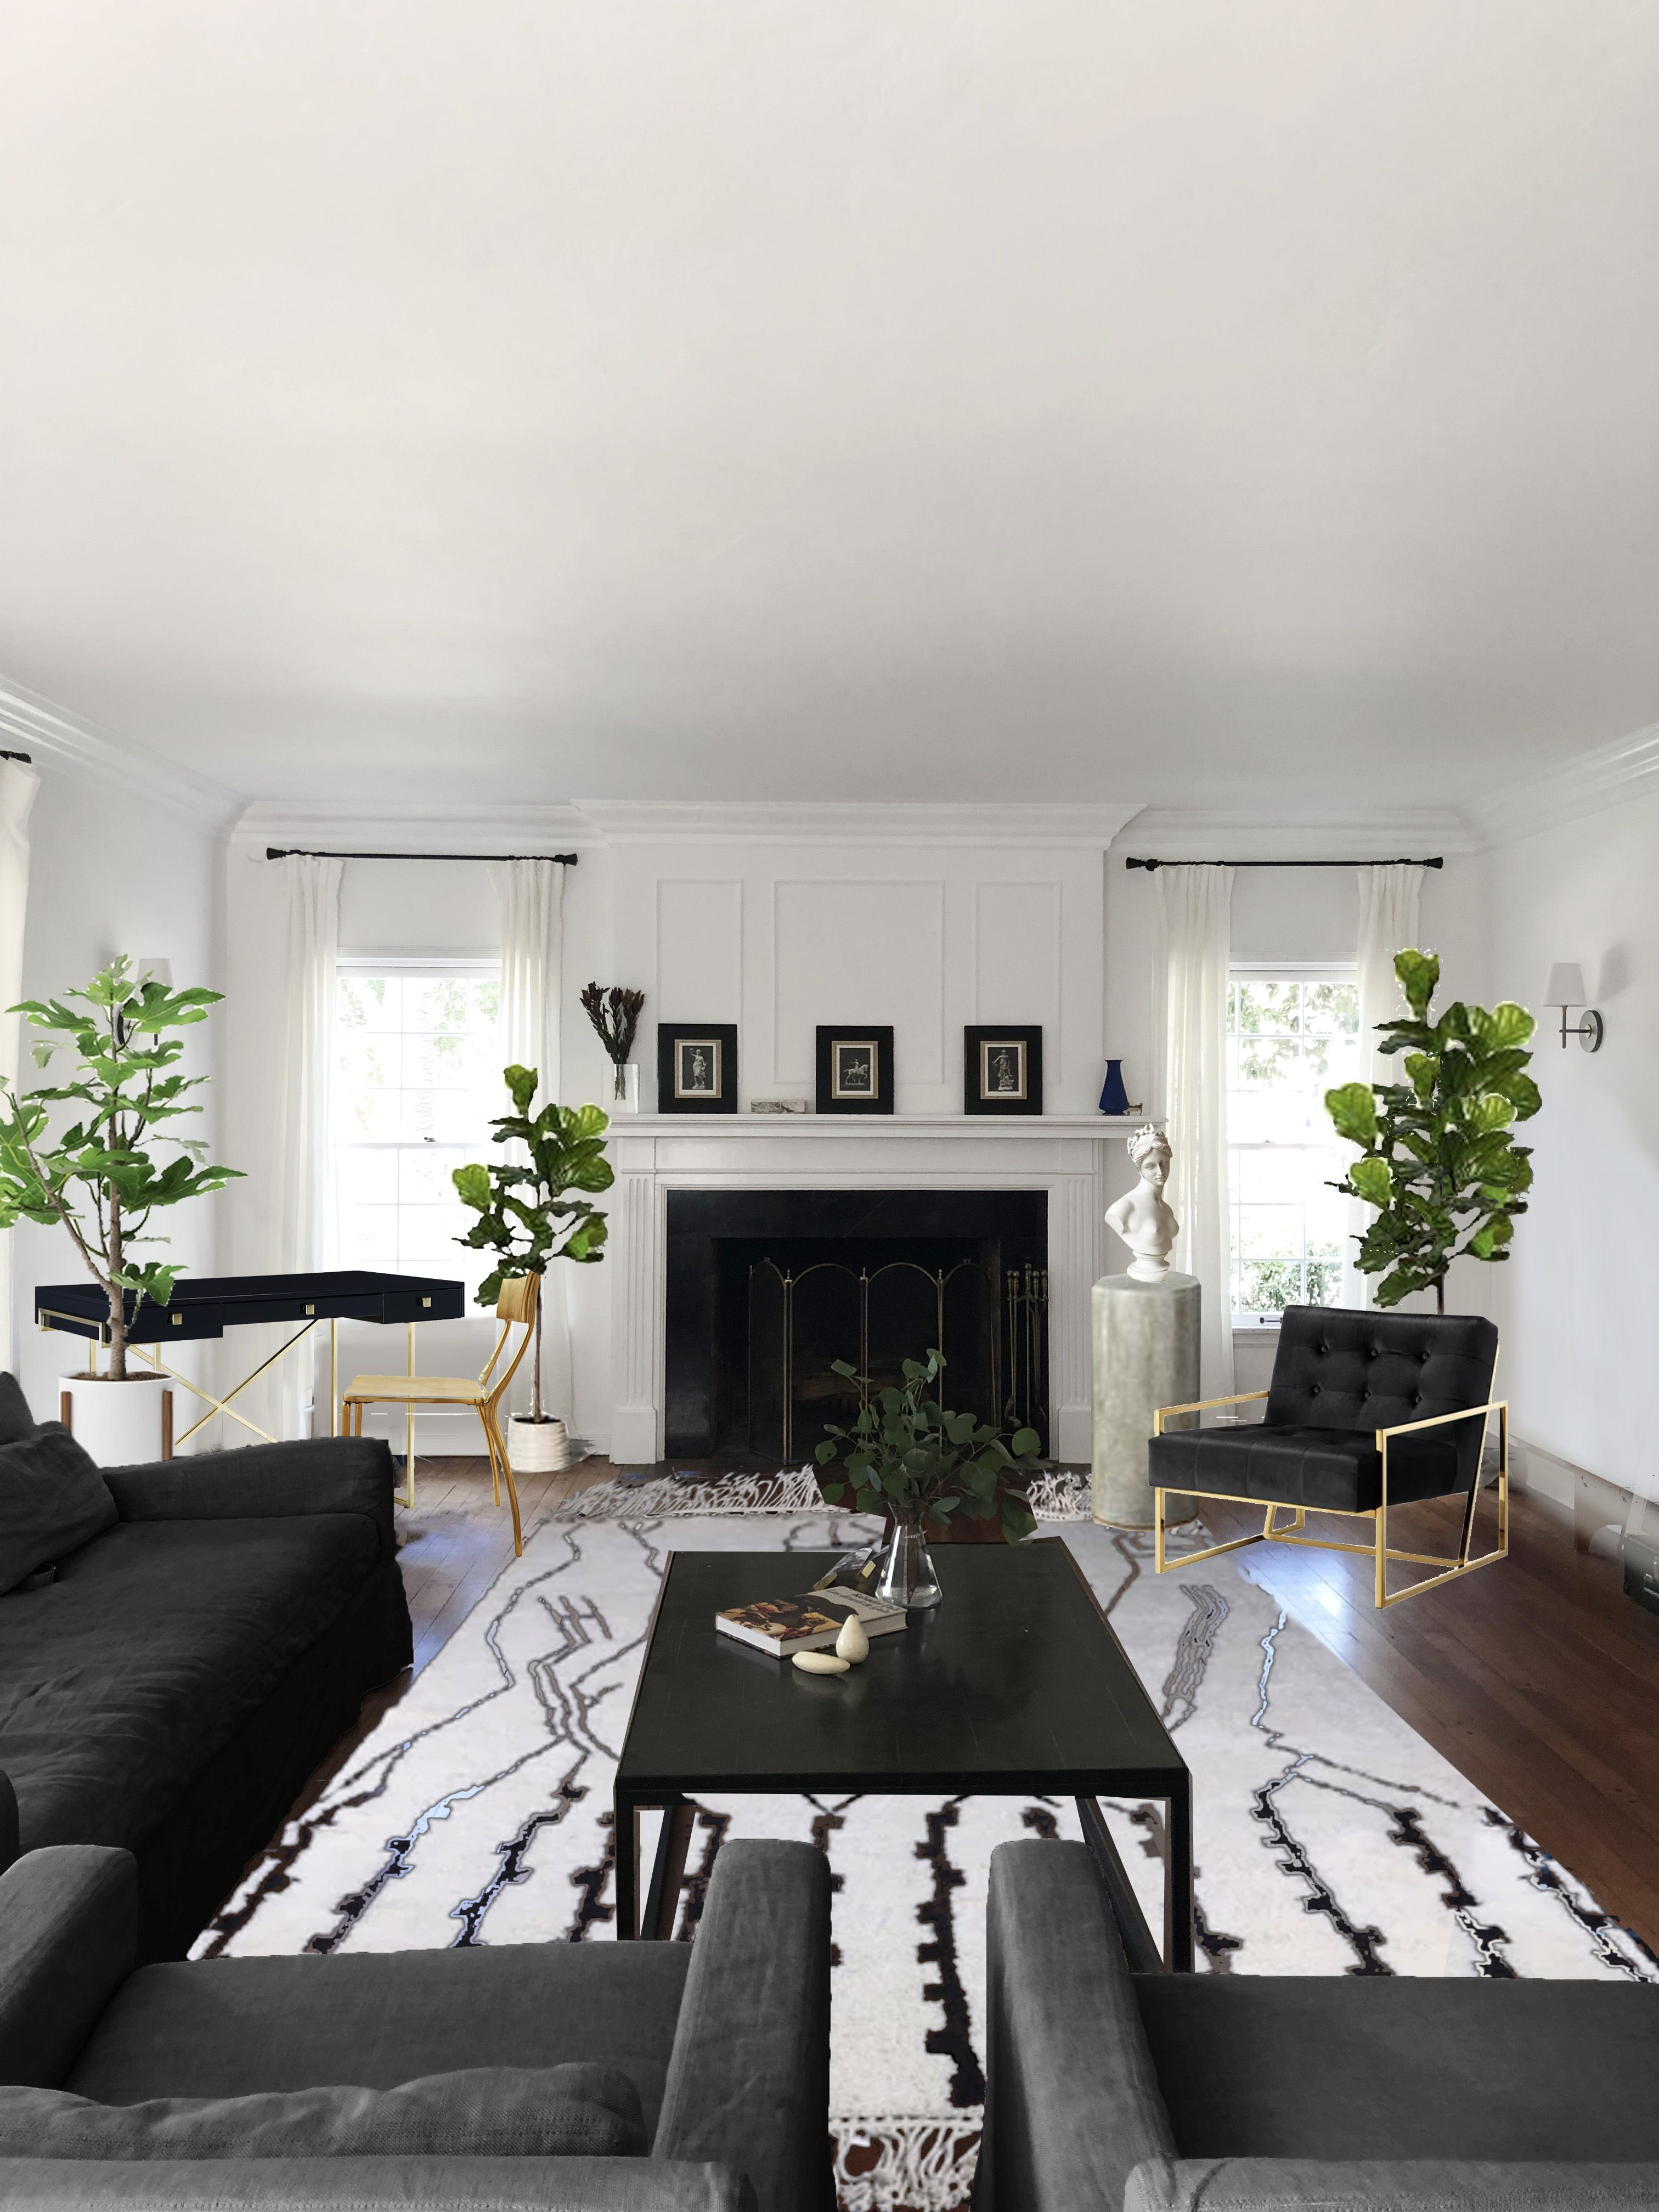 Hill House Living Room 2 View Cb2 Desk And Chair Houzz Rh Sofas Chairs Pilar Etsy Venus Bust